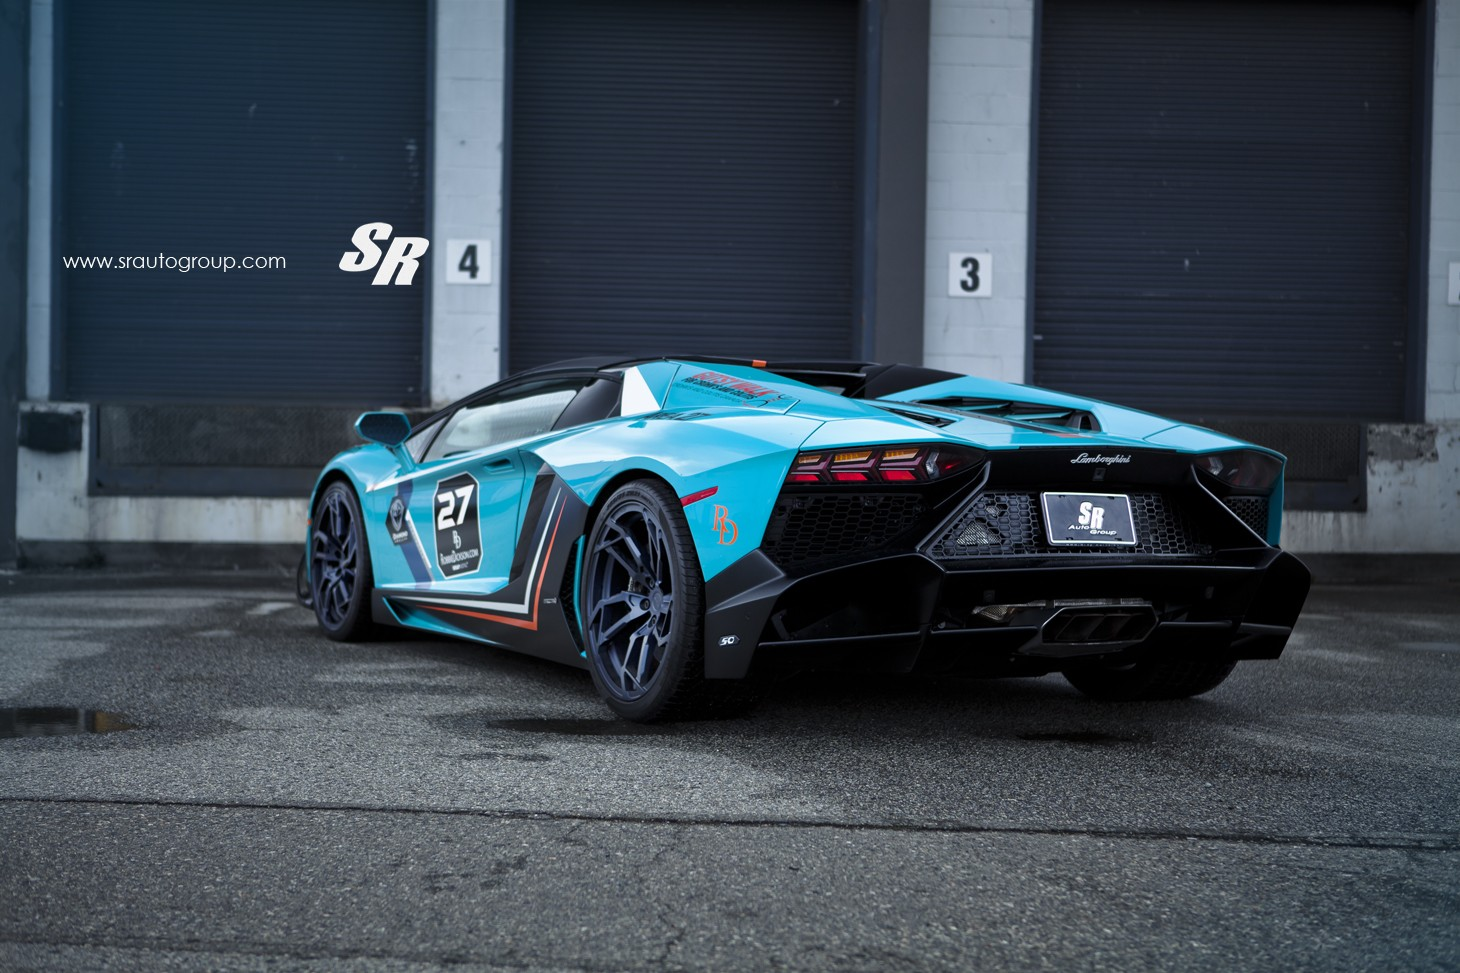 Baby Blue Lamborghini Aventador Gets Pur Wheels Lp720